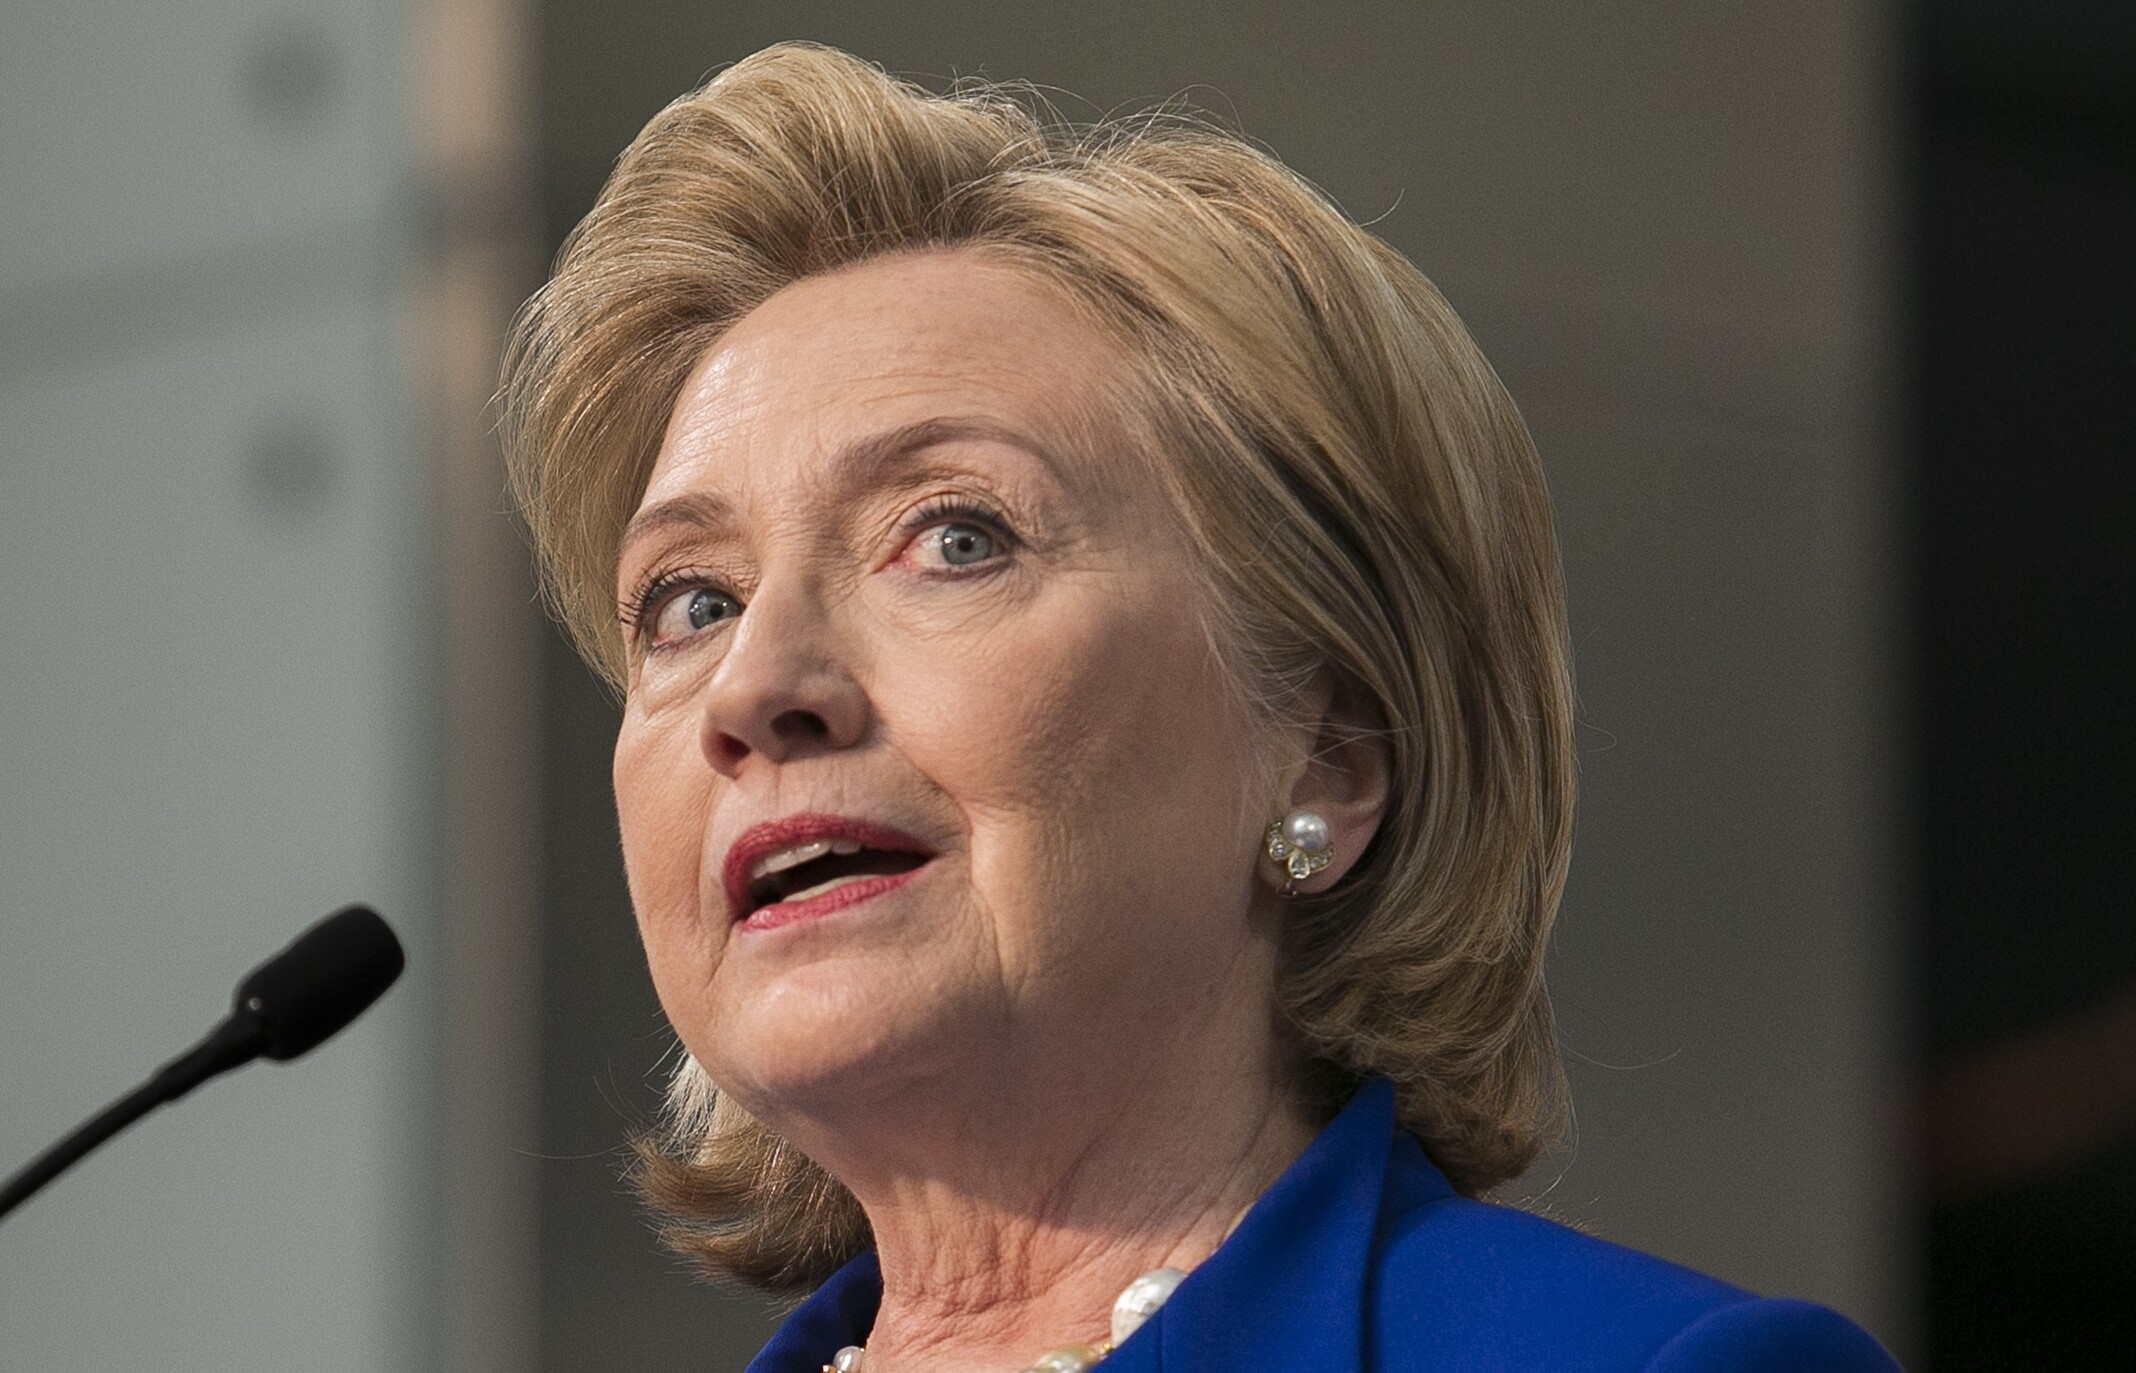 hillary clinton could still face charges over emails experts say